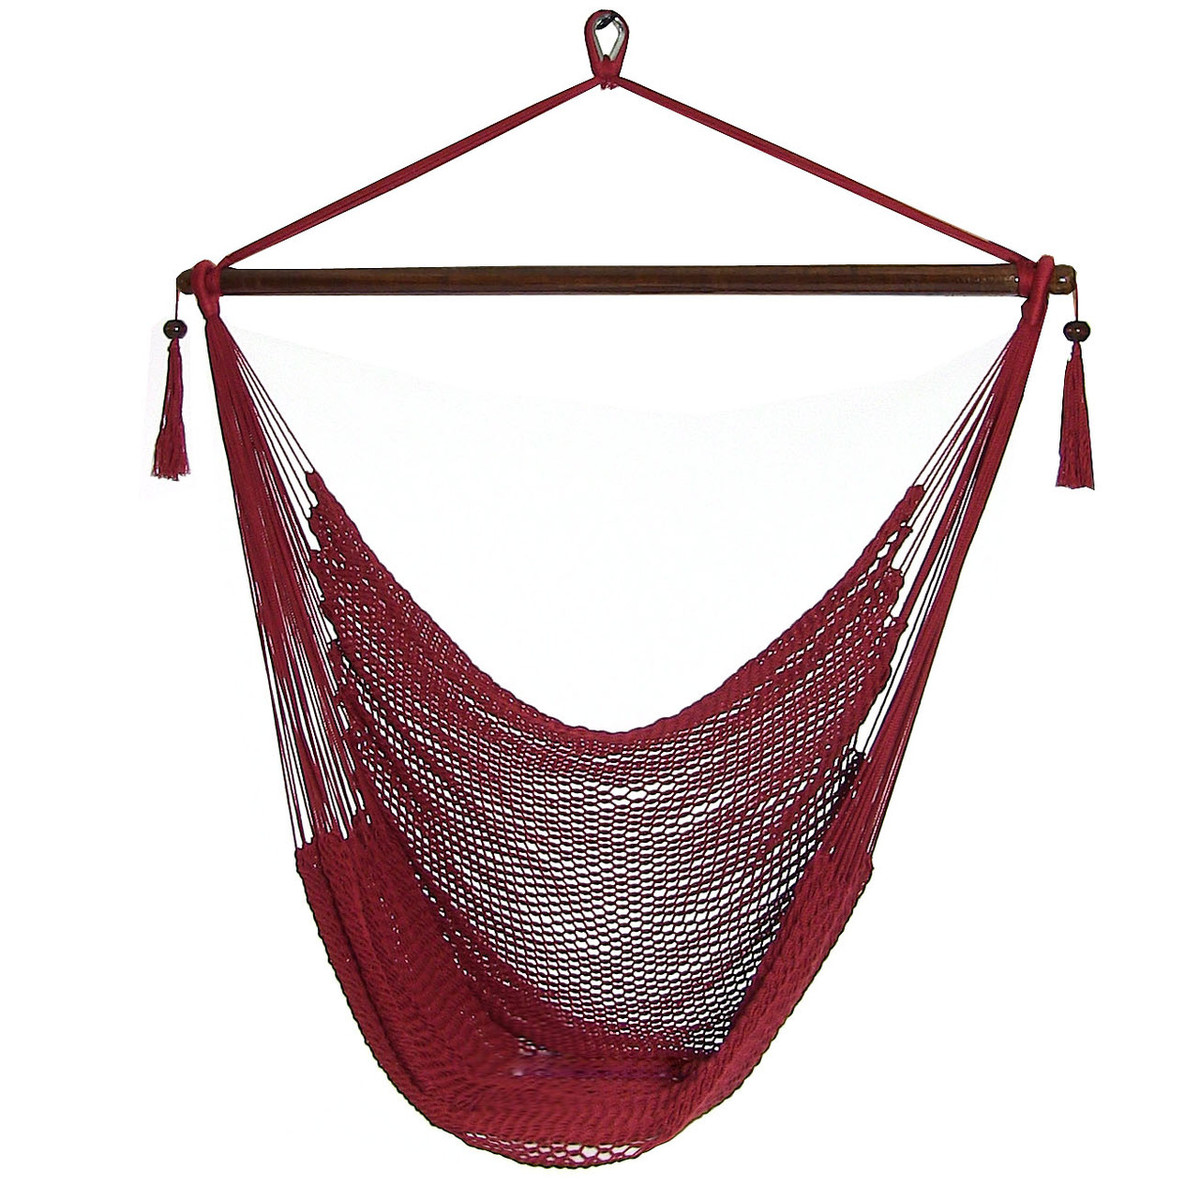 mayan canada products cotton hammock universal hammocks natural cord universe xl with thick stand